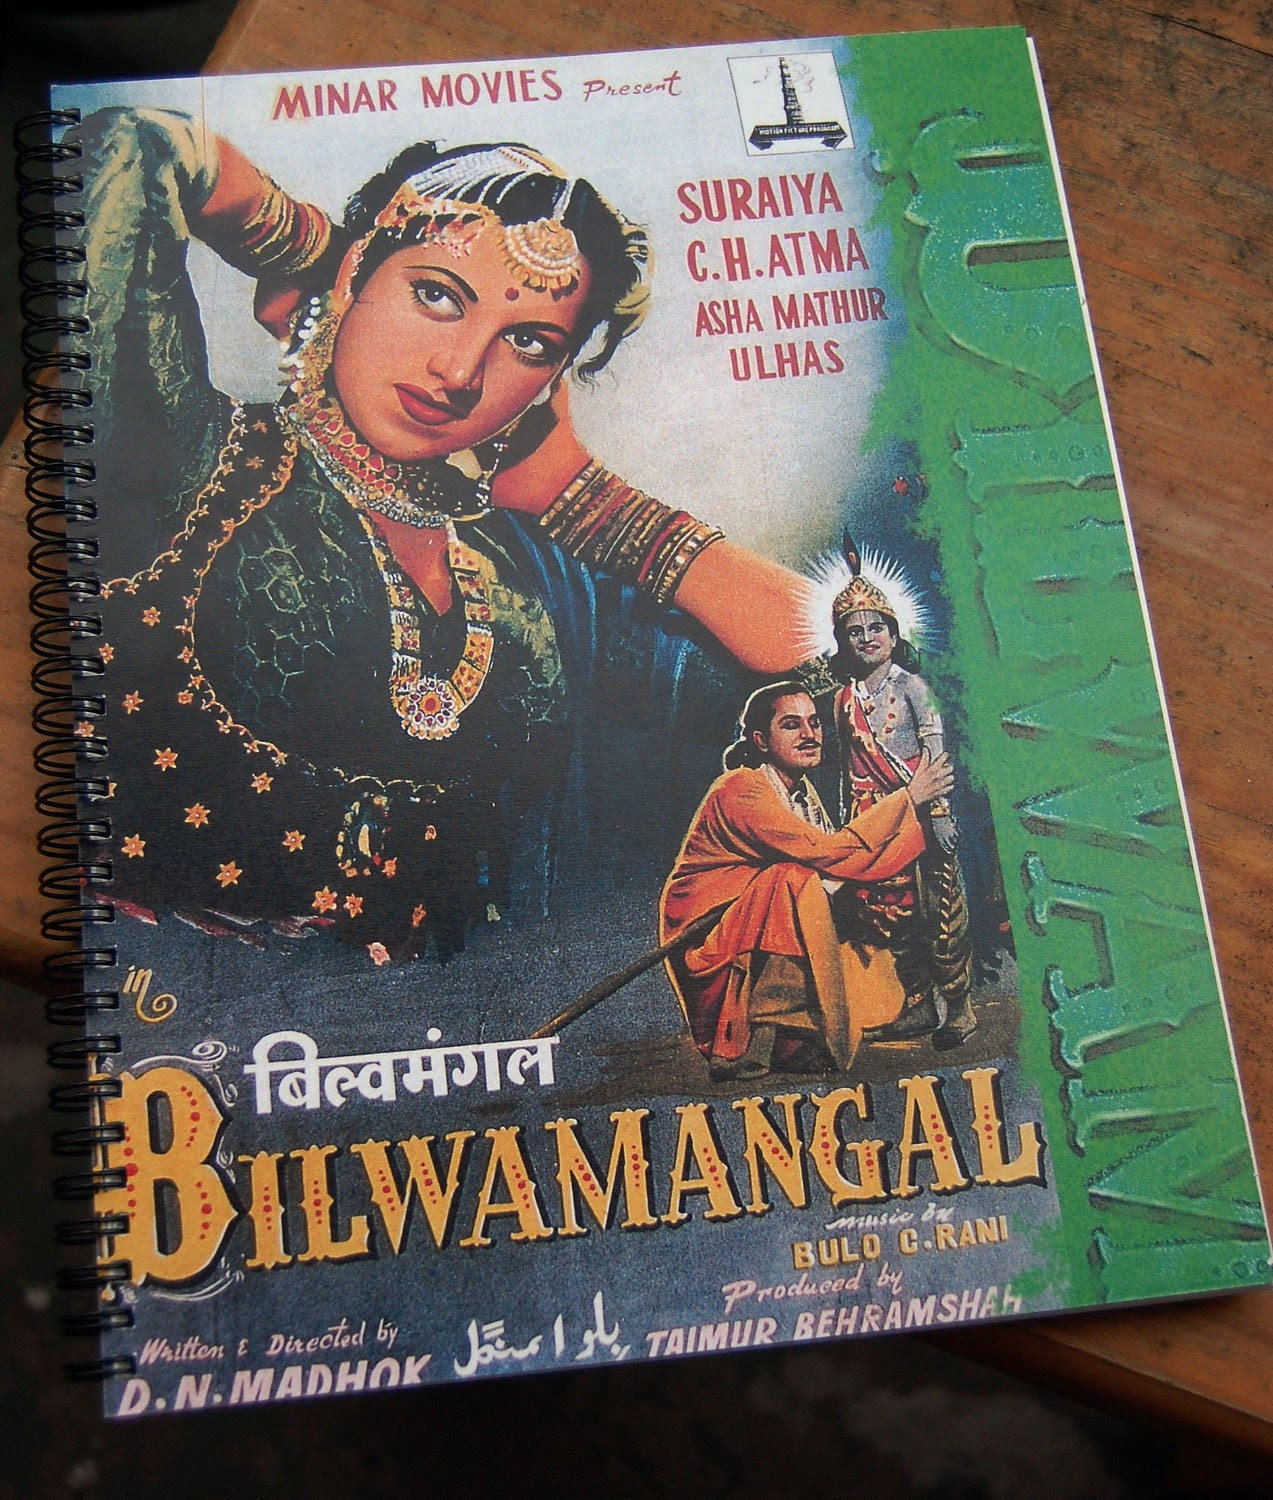 Bollywood Movie Poster Sketchbook - Bilwamangal